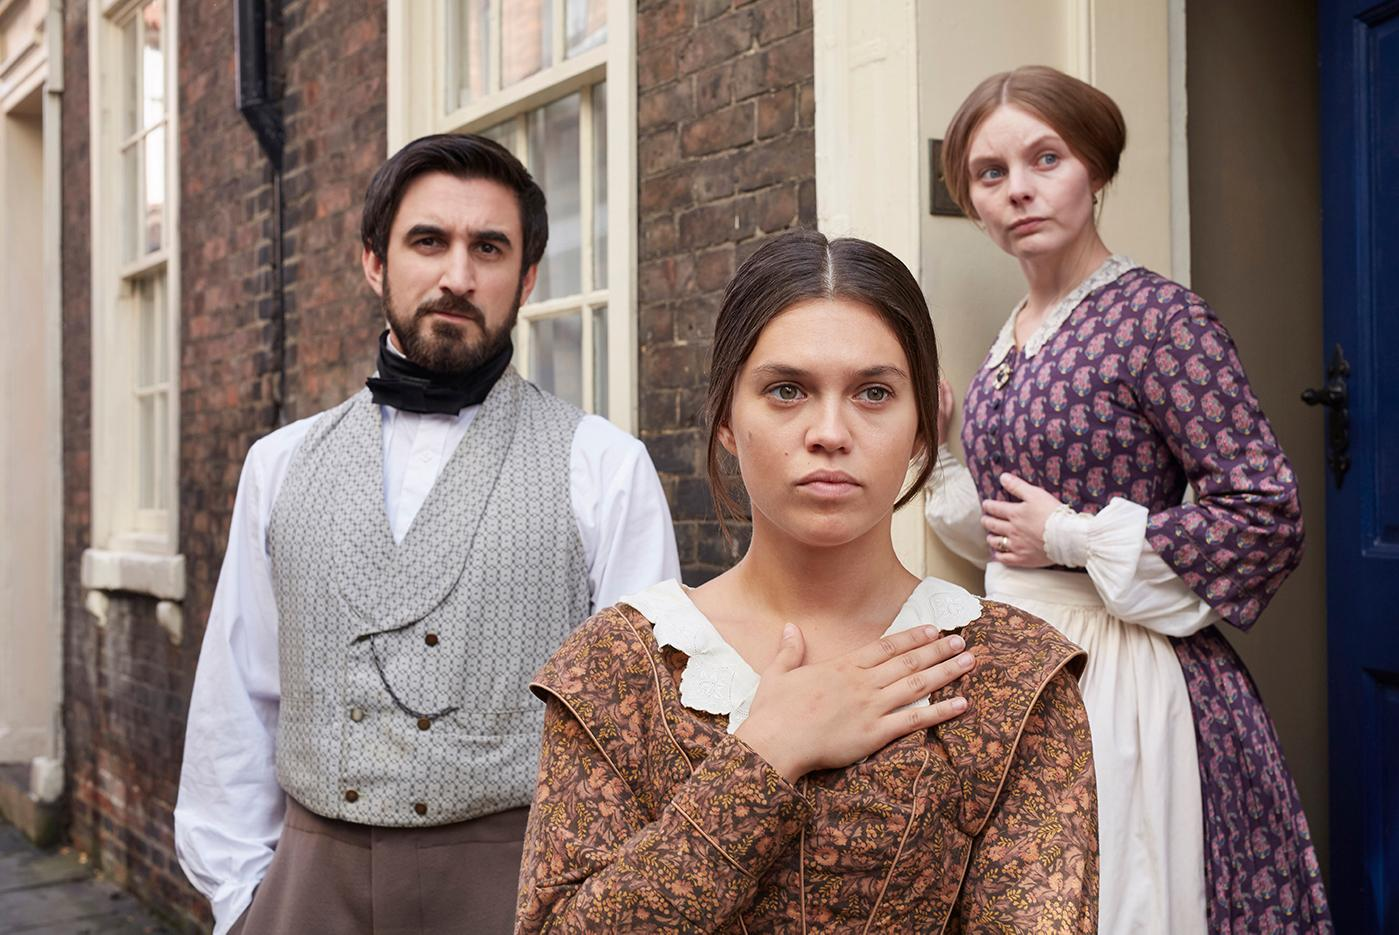 Francatelli, Abigail, and Skerrett. Photo: Justin Slee/ITV Plc for MASTERPIECE